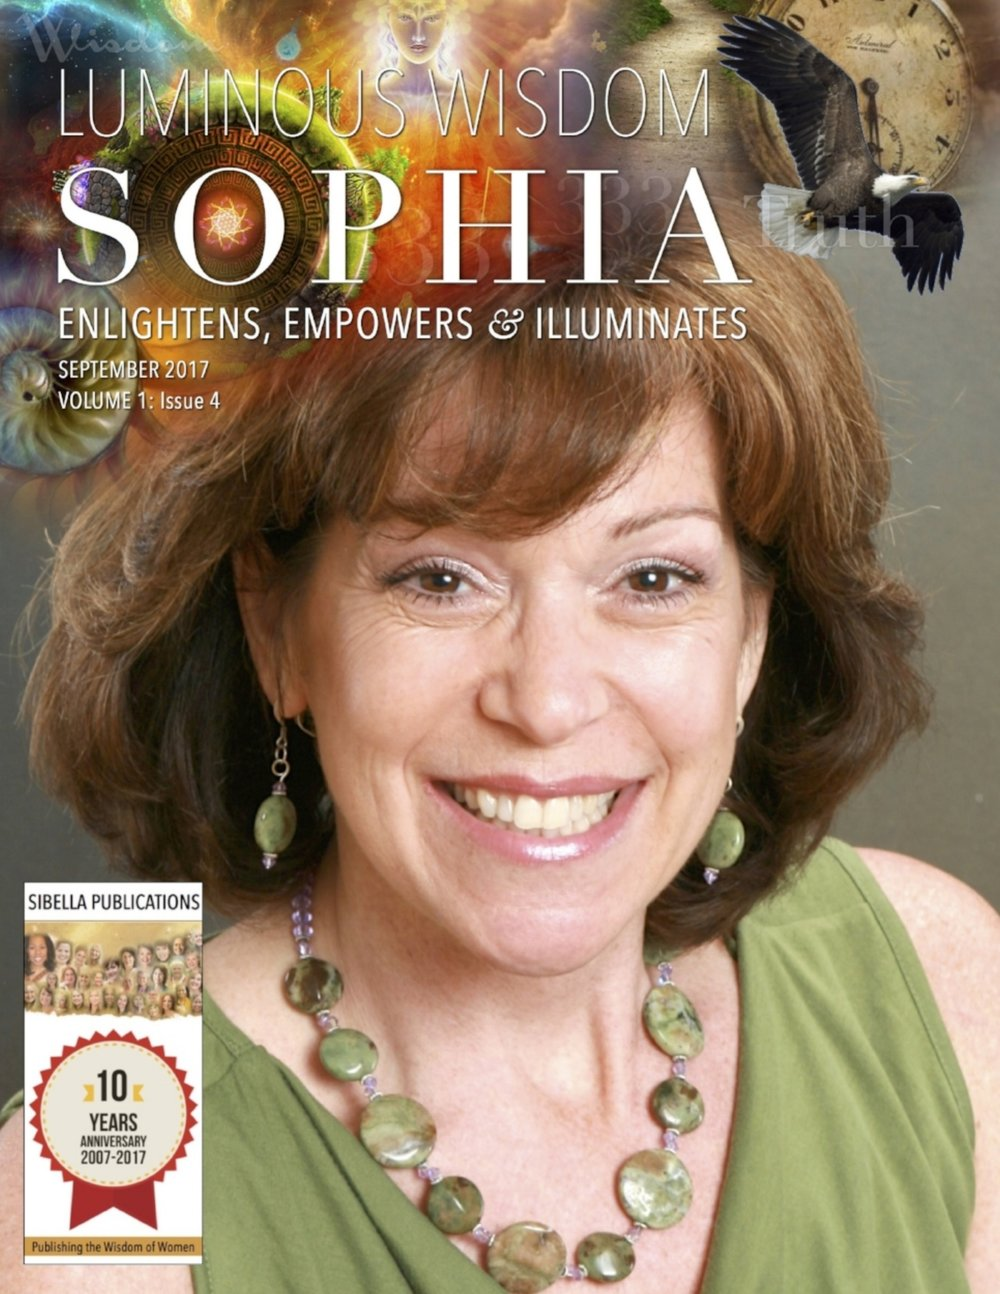 Honored to be on the cover of Luminous Wisdom Sophia, an online global magazine that enlightens, empowers and illuminates